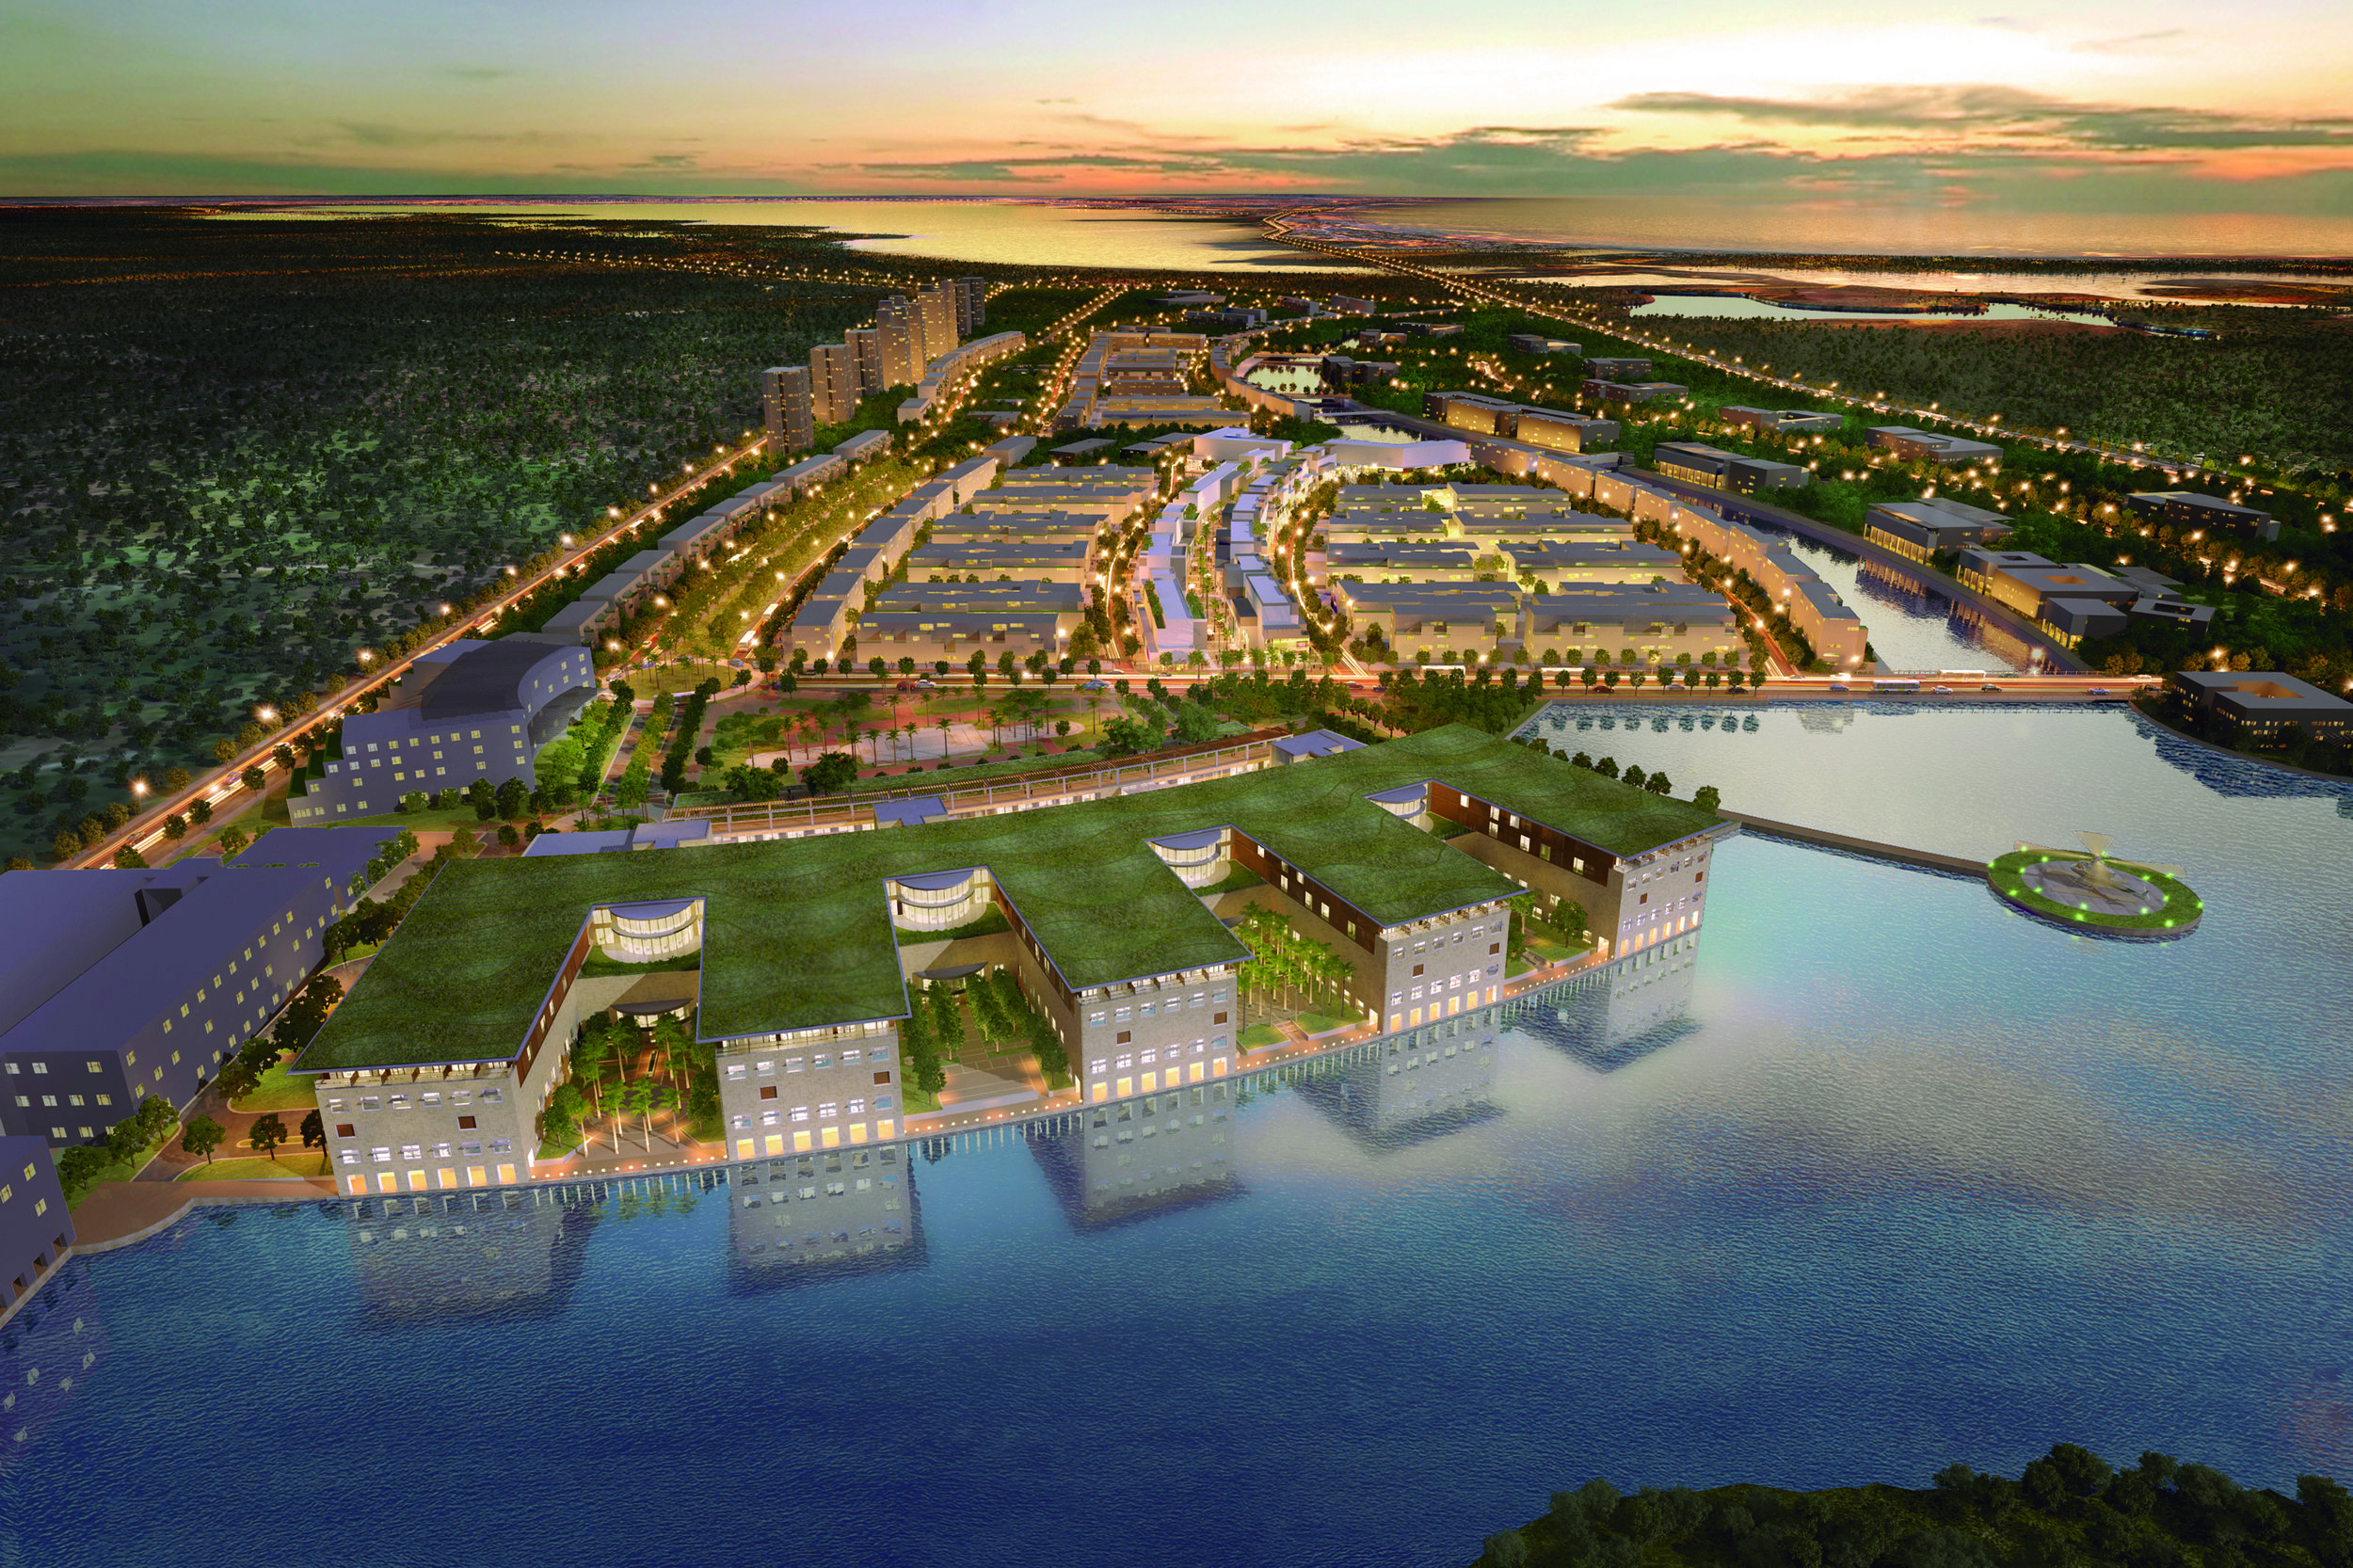 Serena del Mar Masterplan was drawn up by EDSA, an American landscape design firm that specialises in sustainability